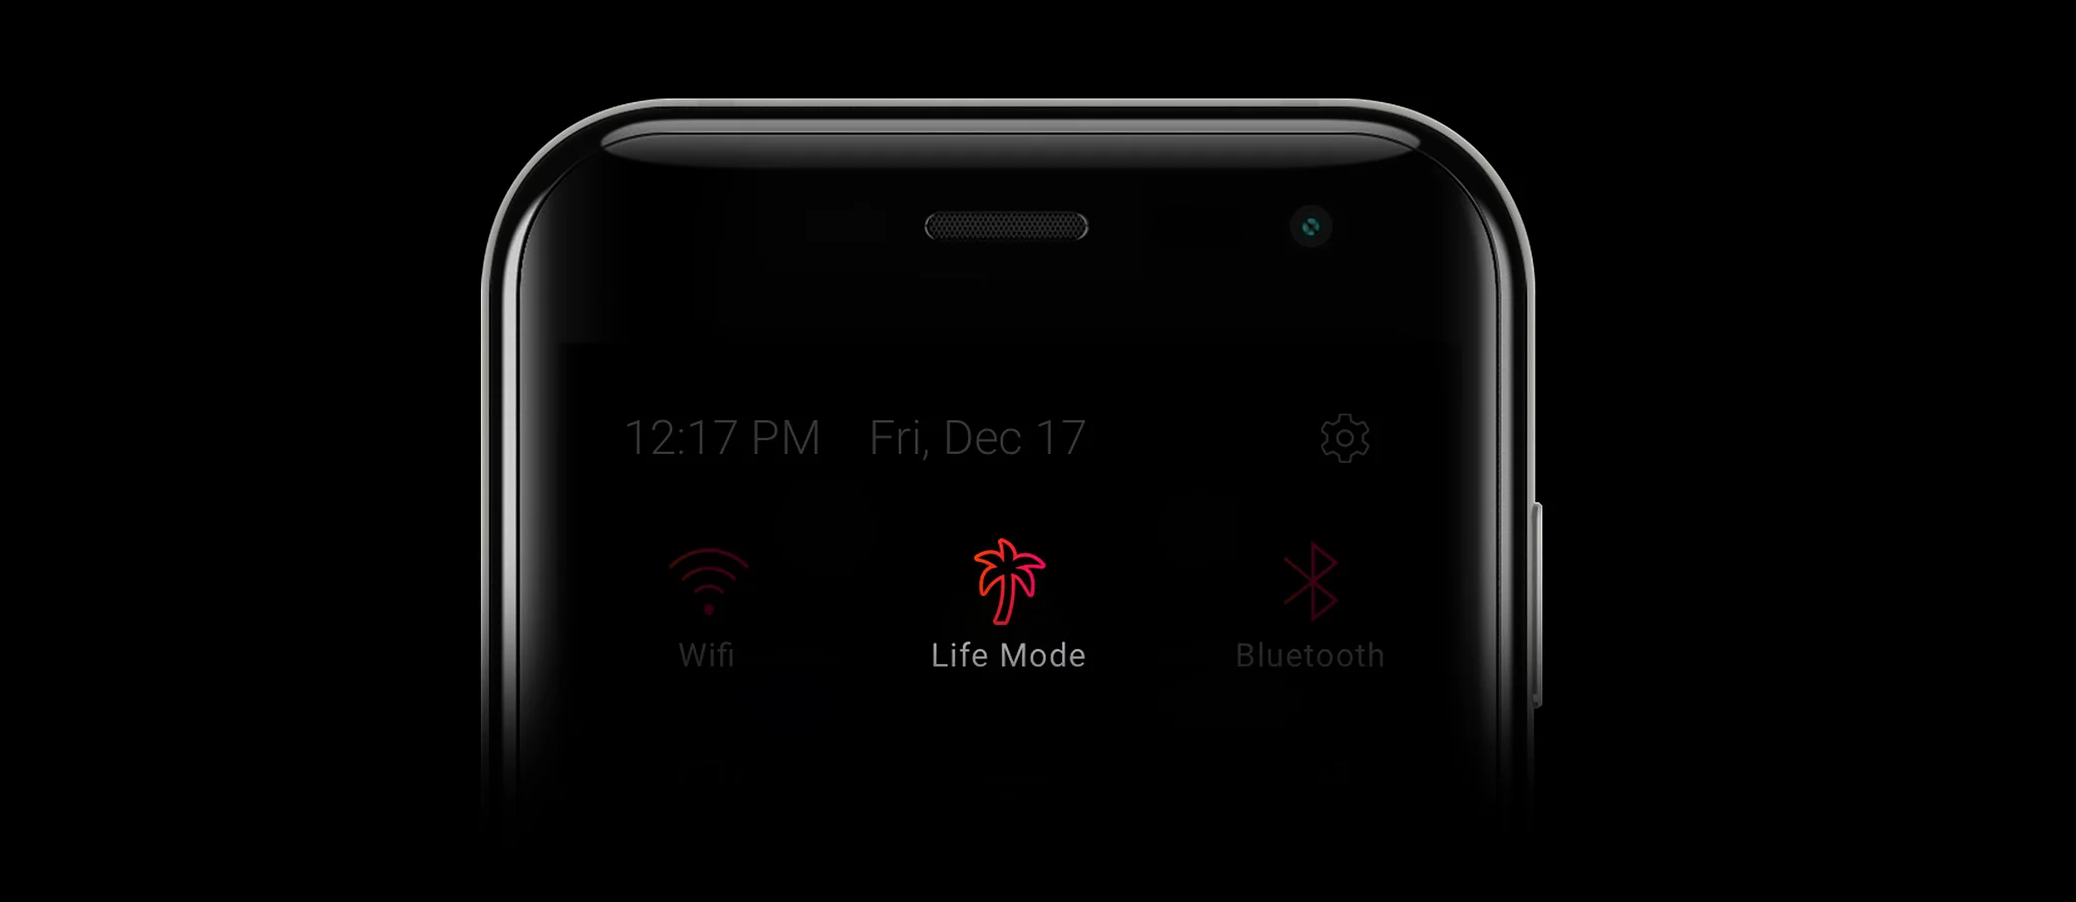 Life Mode on Palm best small smartphone